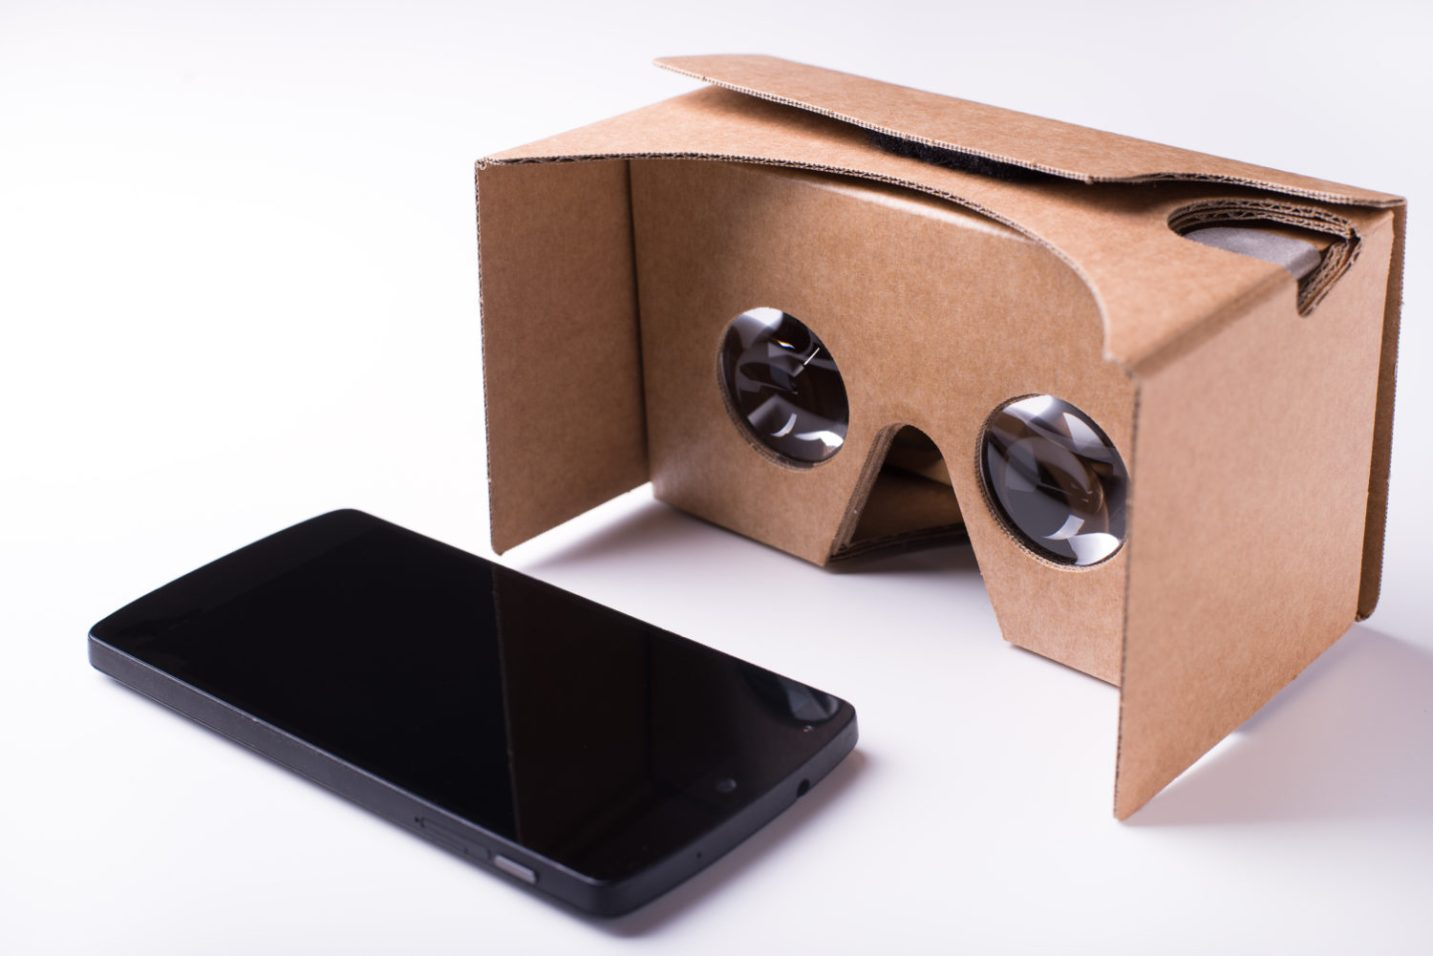 A woman using Google Cardboard